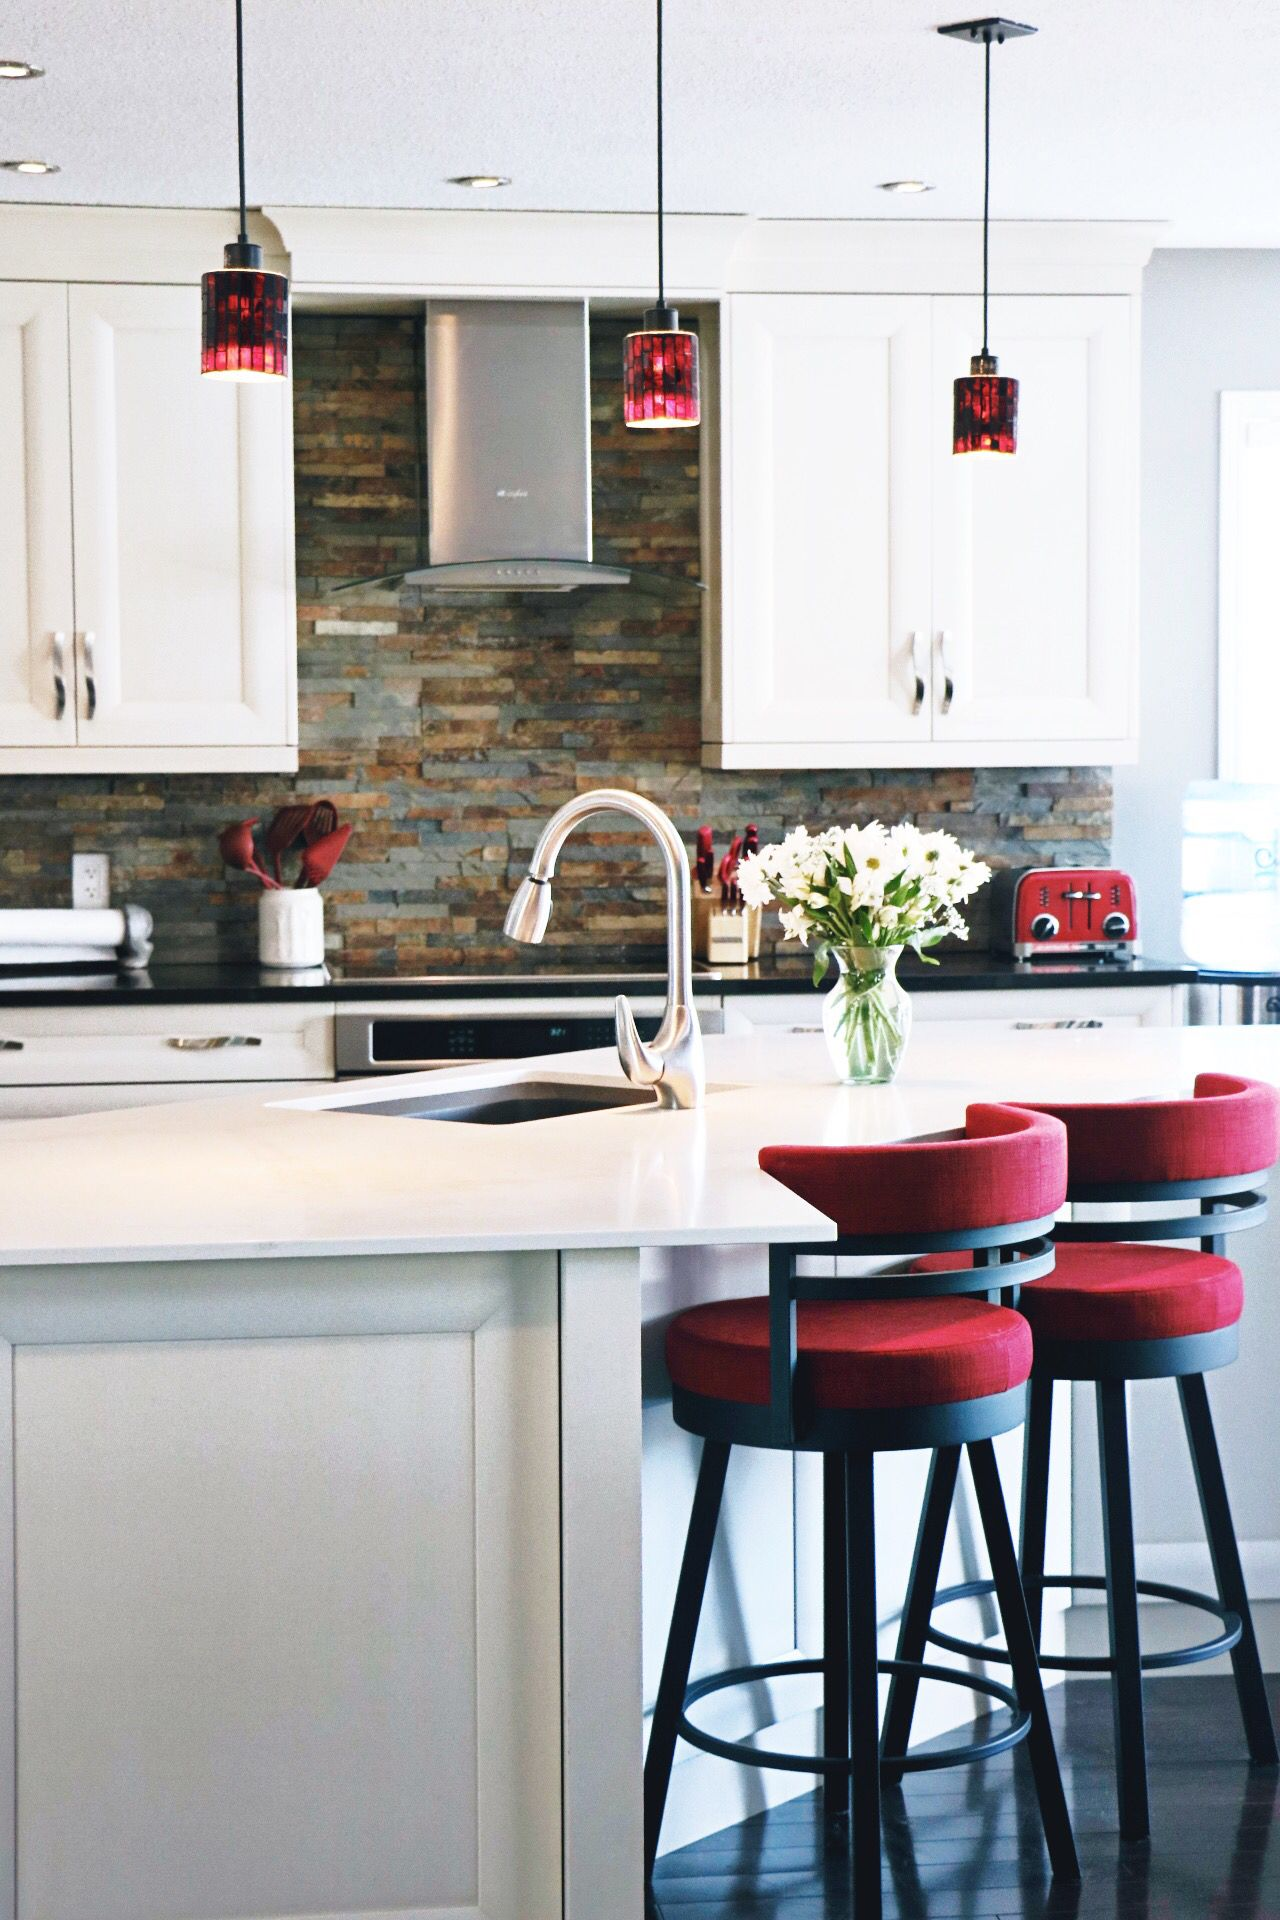 Mixing it up! Crisp white cabinets, rustic brick ...